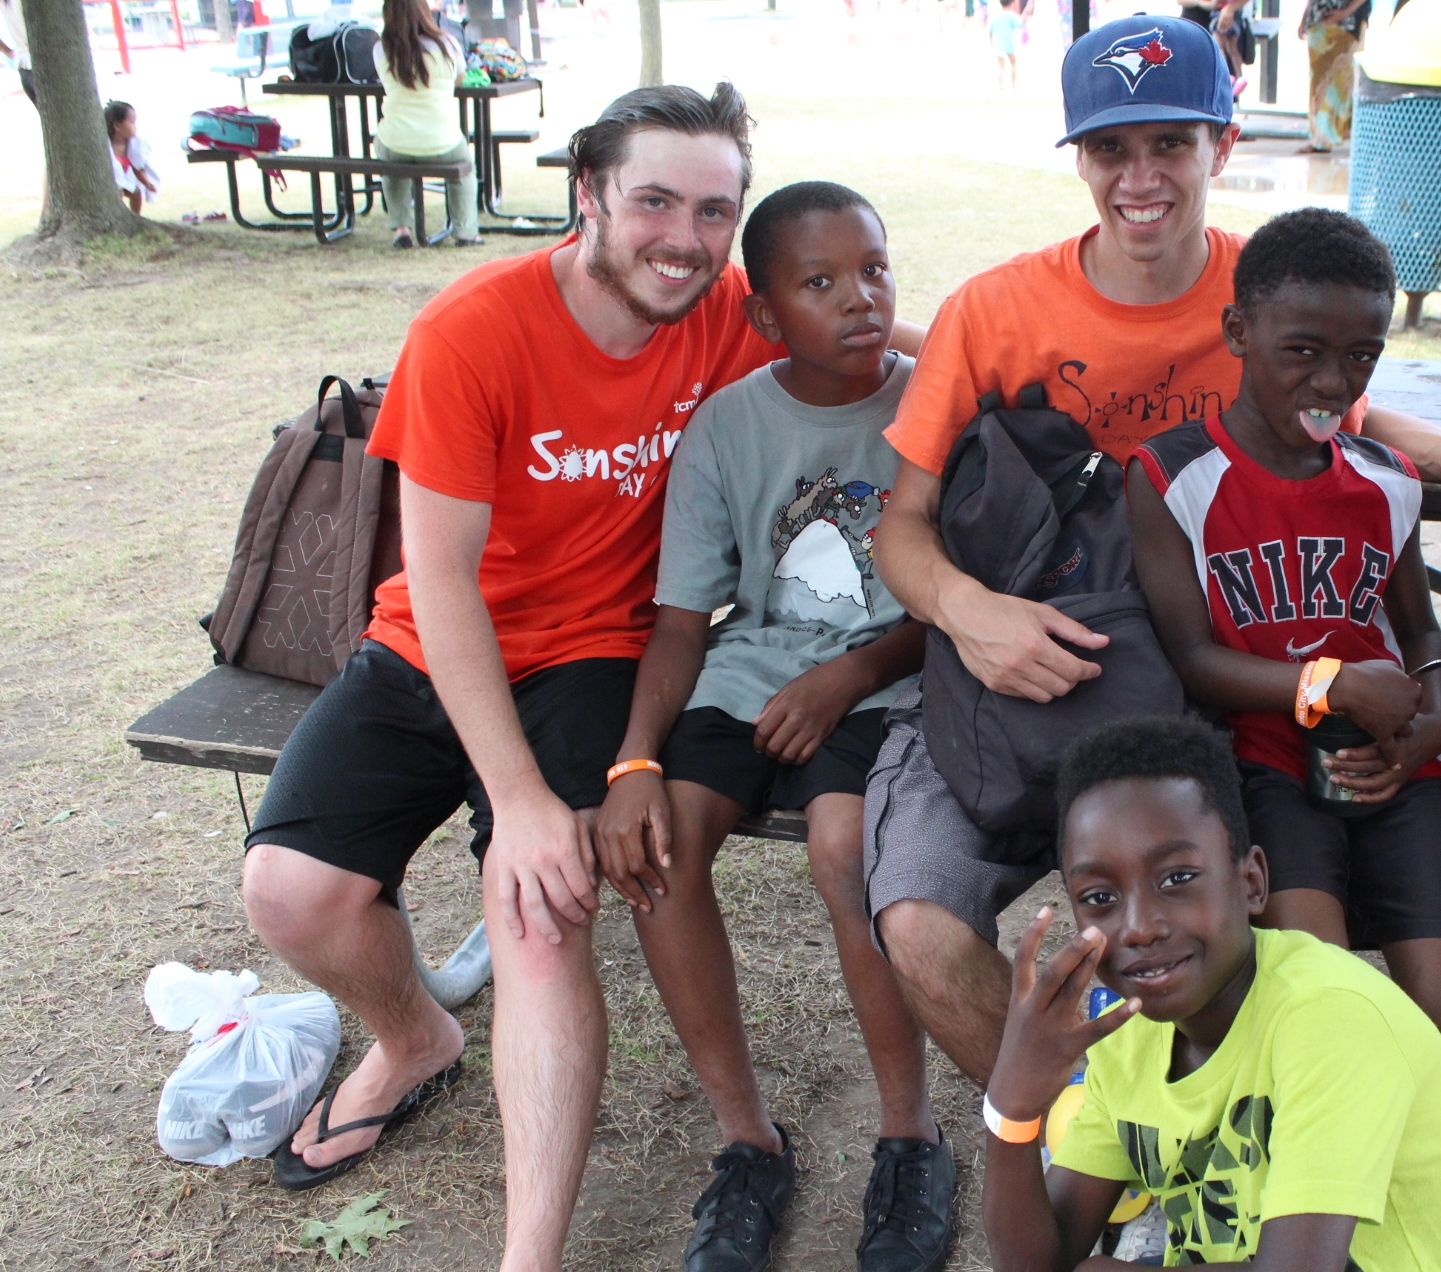 Fraser (far left), with kids from last year's Sonshine Day Camp at Willowtree.